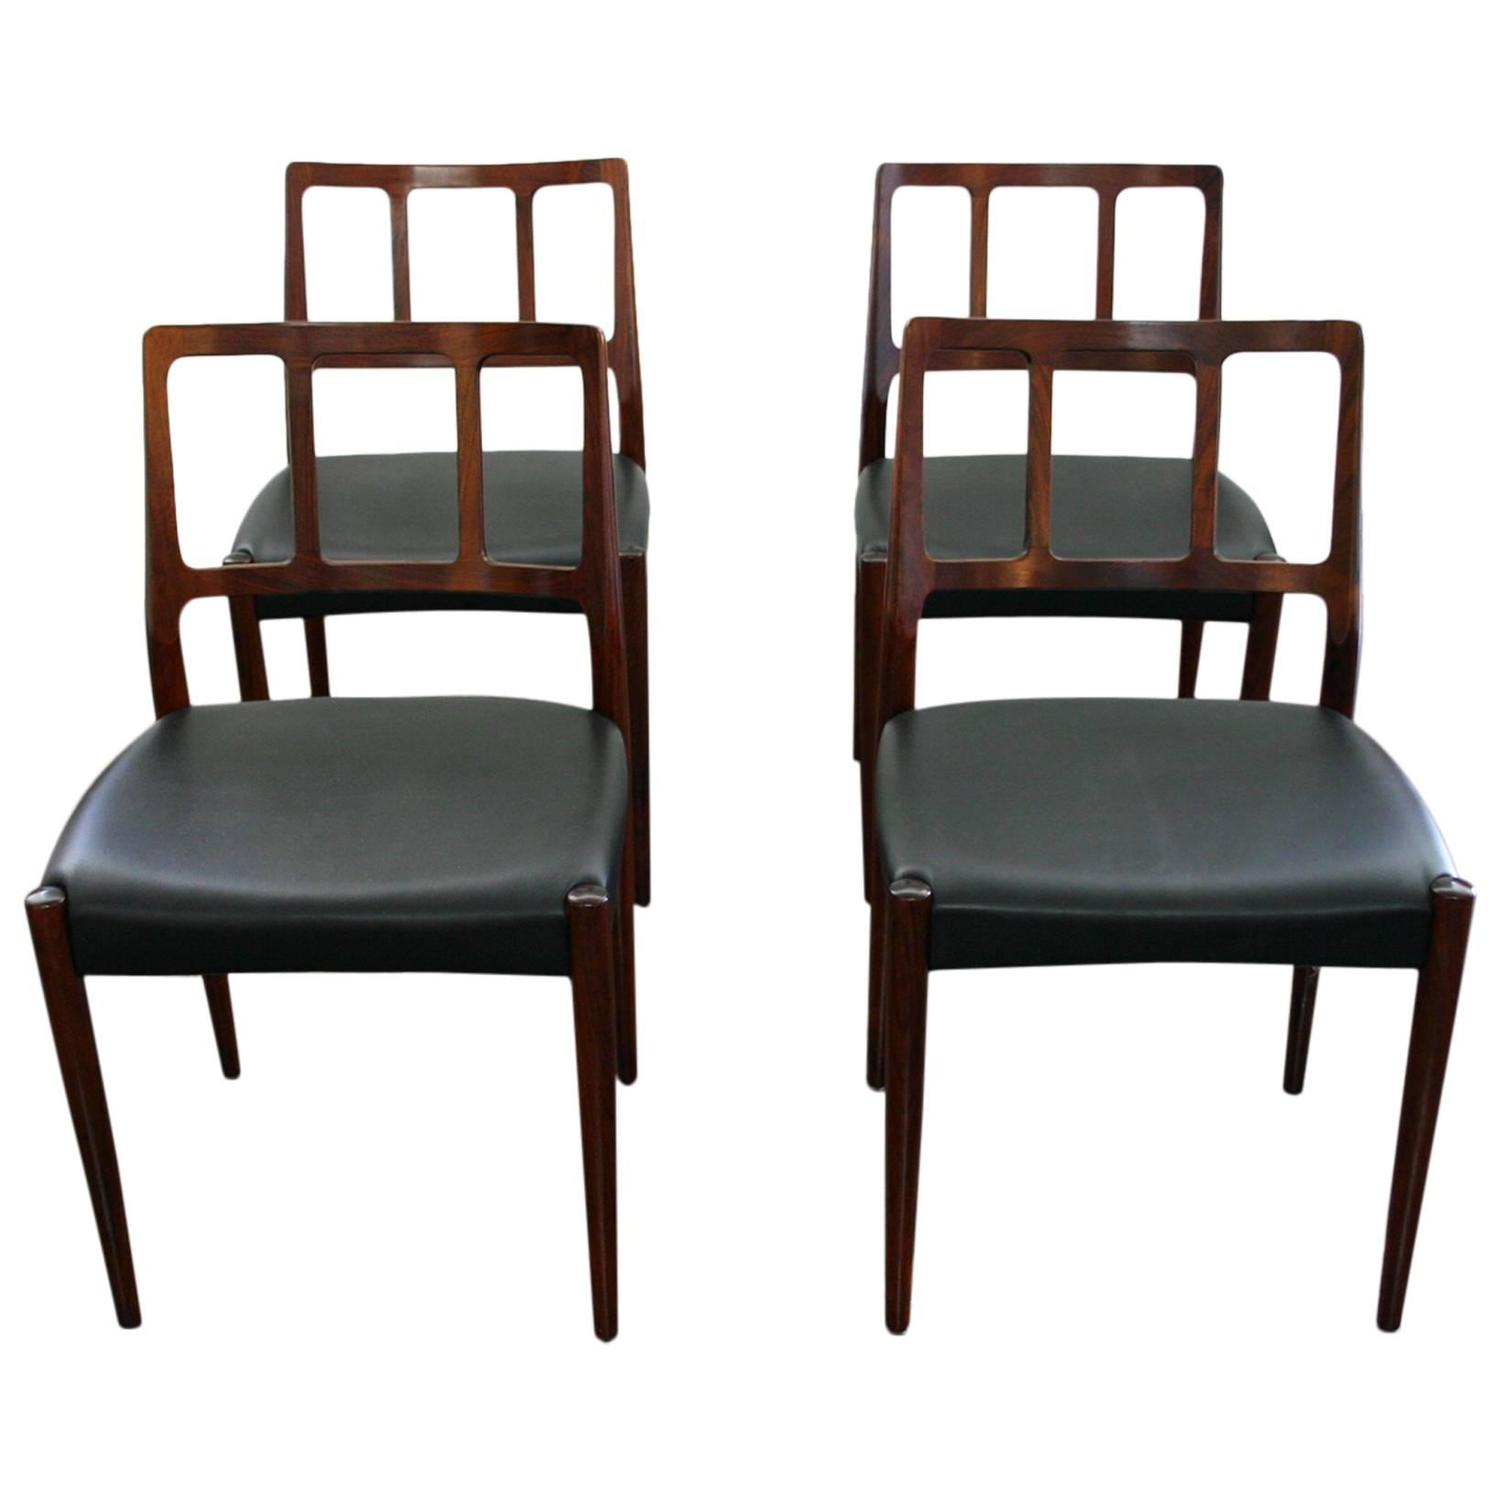 set of four mid century modern dining chairs for sale at 1stdibs